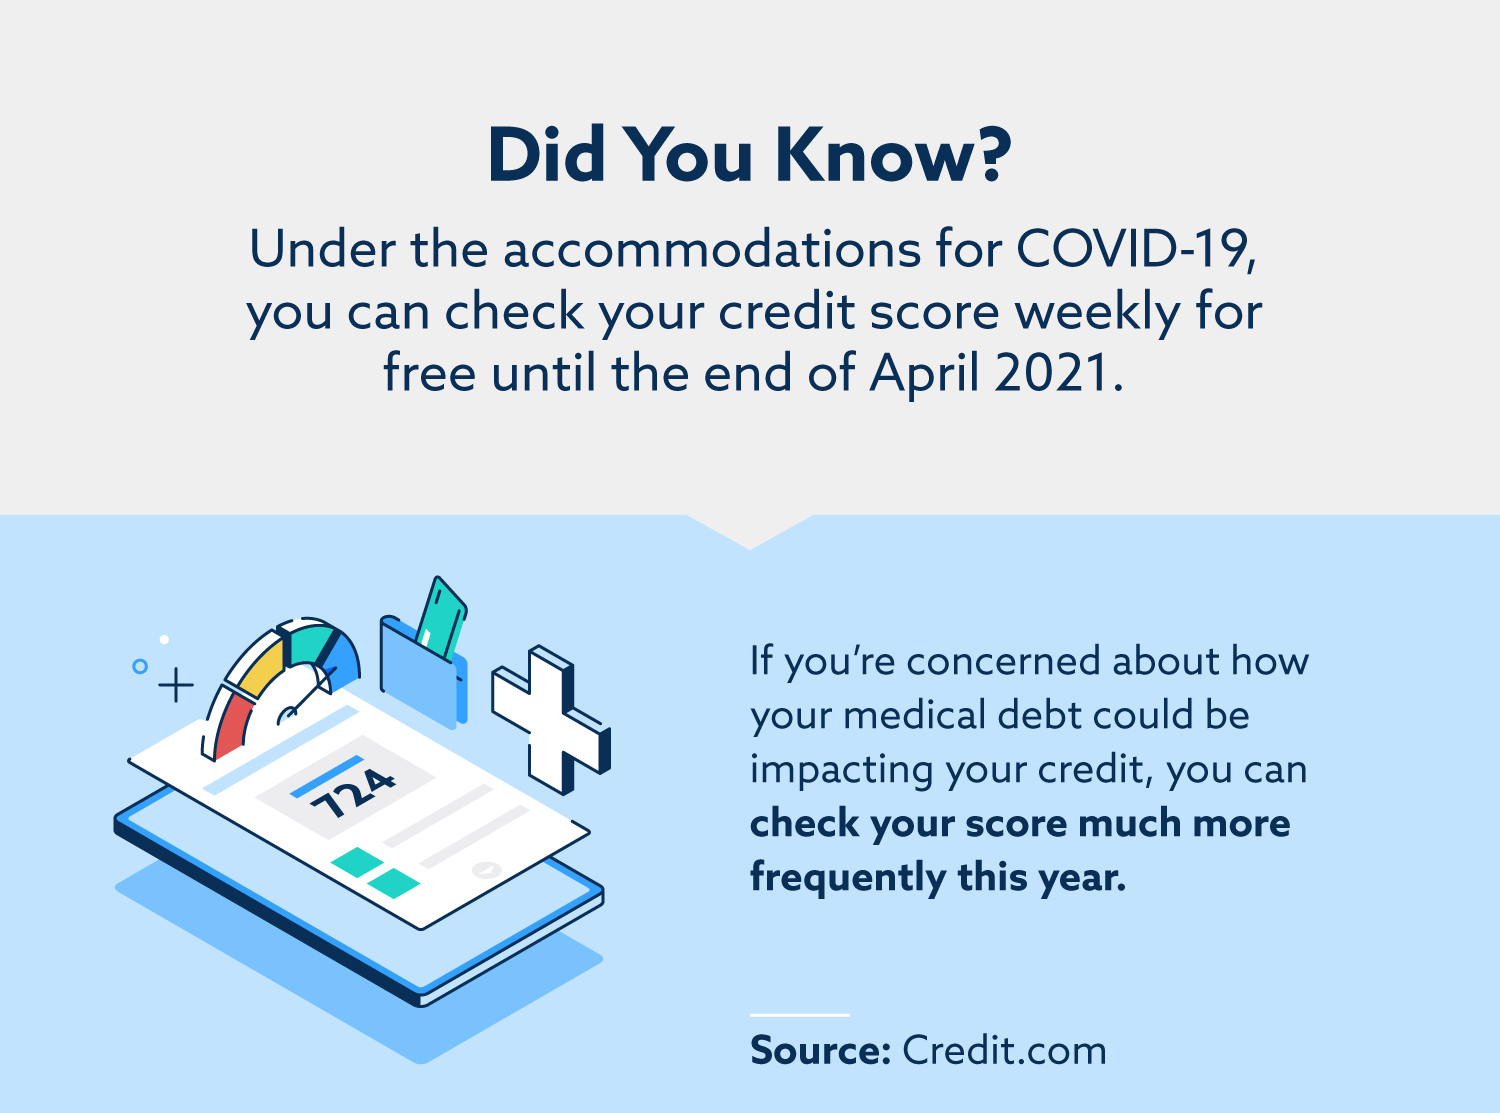 Under the accommodations for COVID-19, you can check your credit score weekly for free until the end of April 2021.